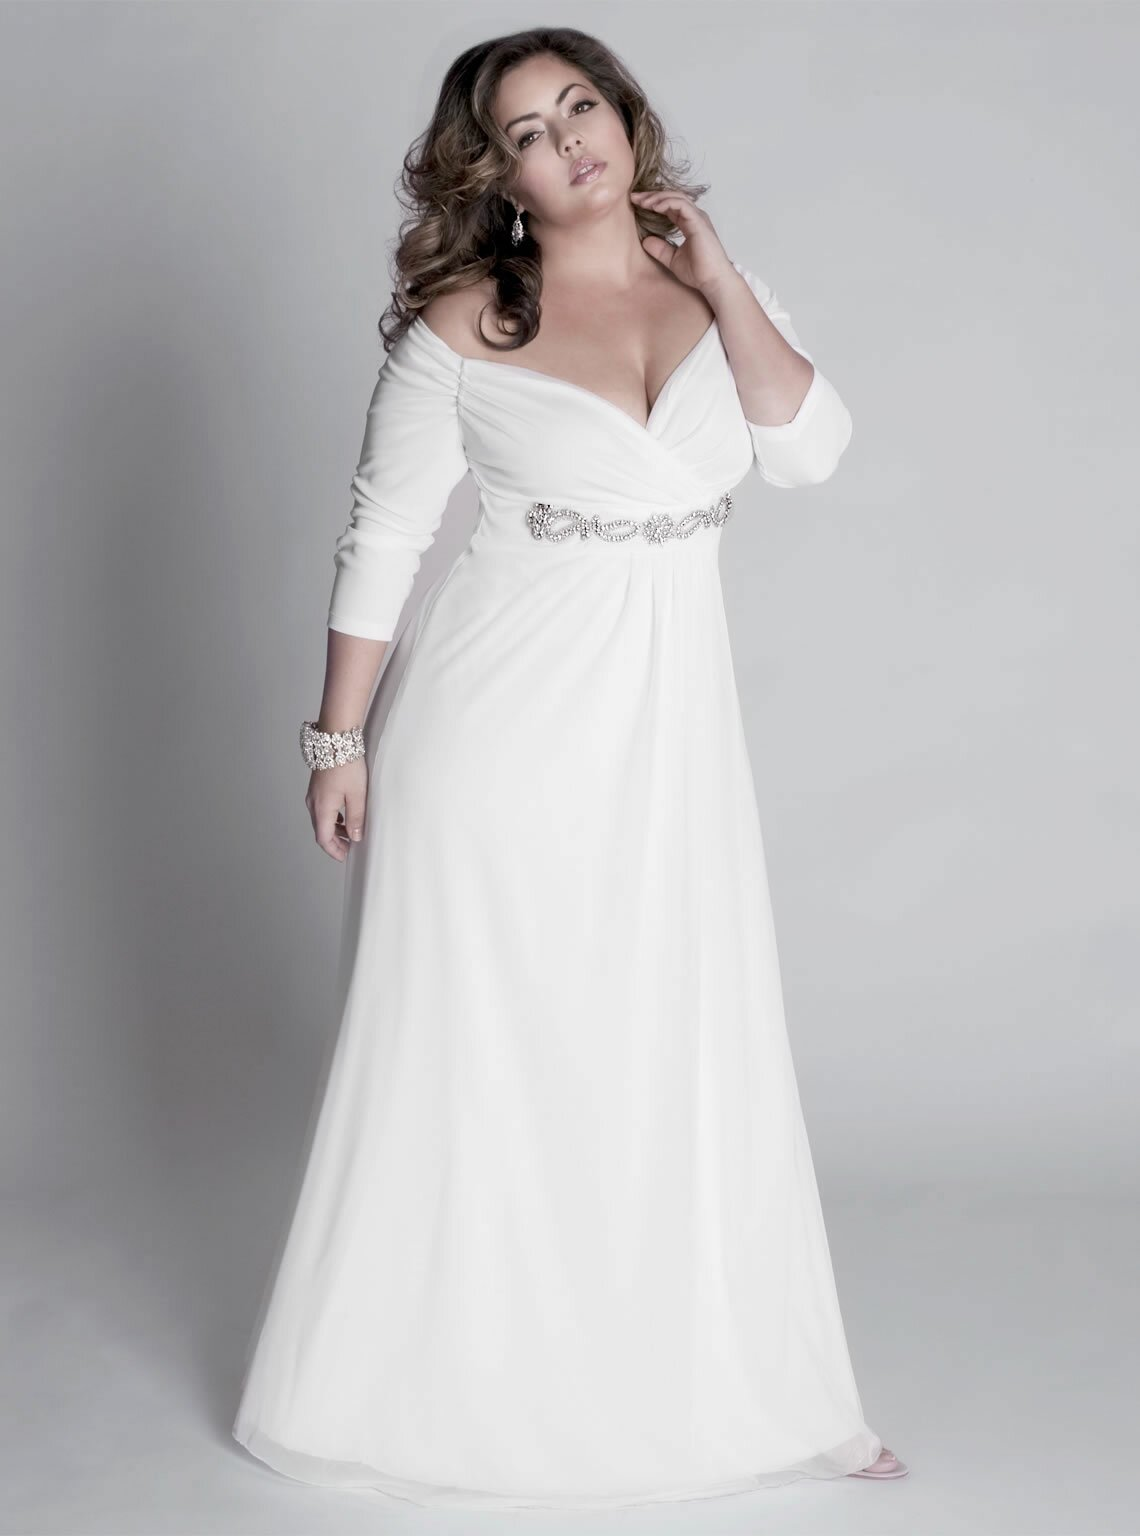 Plus Size Second Wedding Dresses Pictures Ideas Guide To Buying Photo